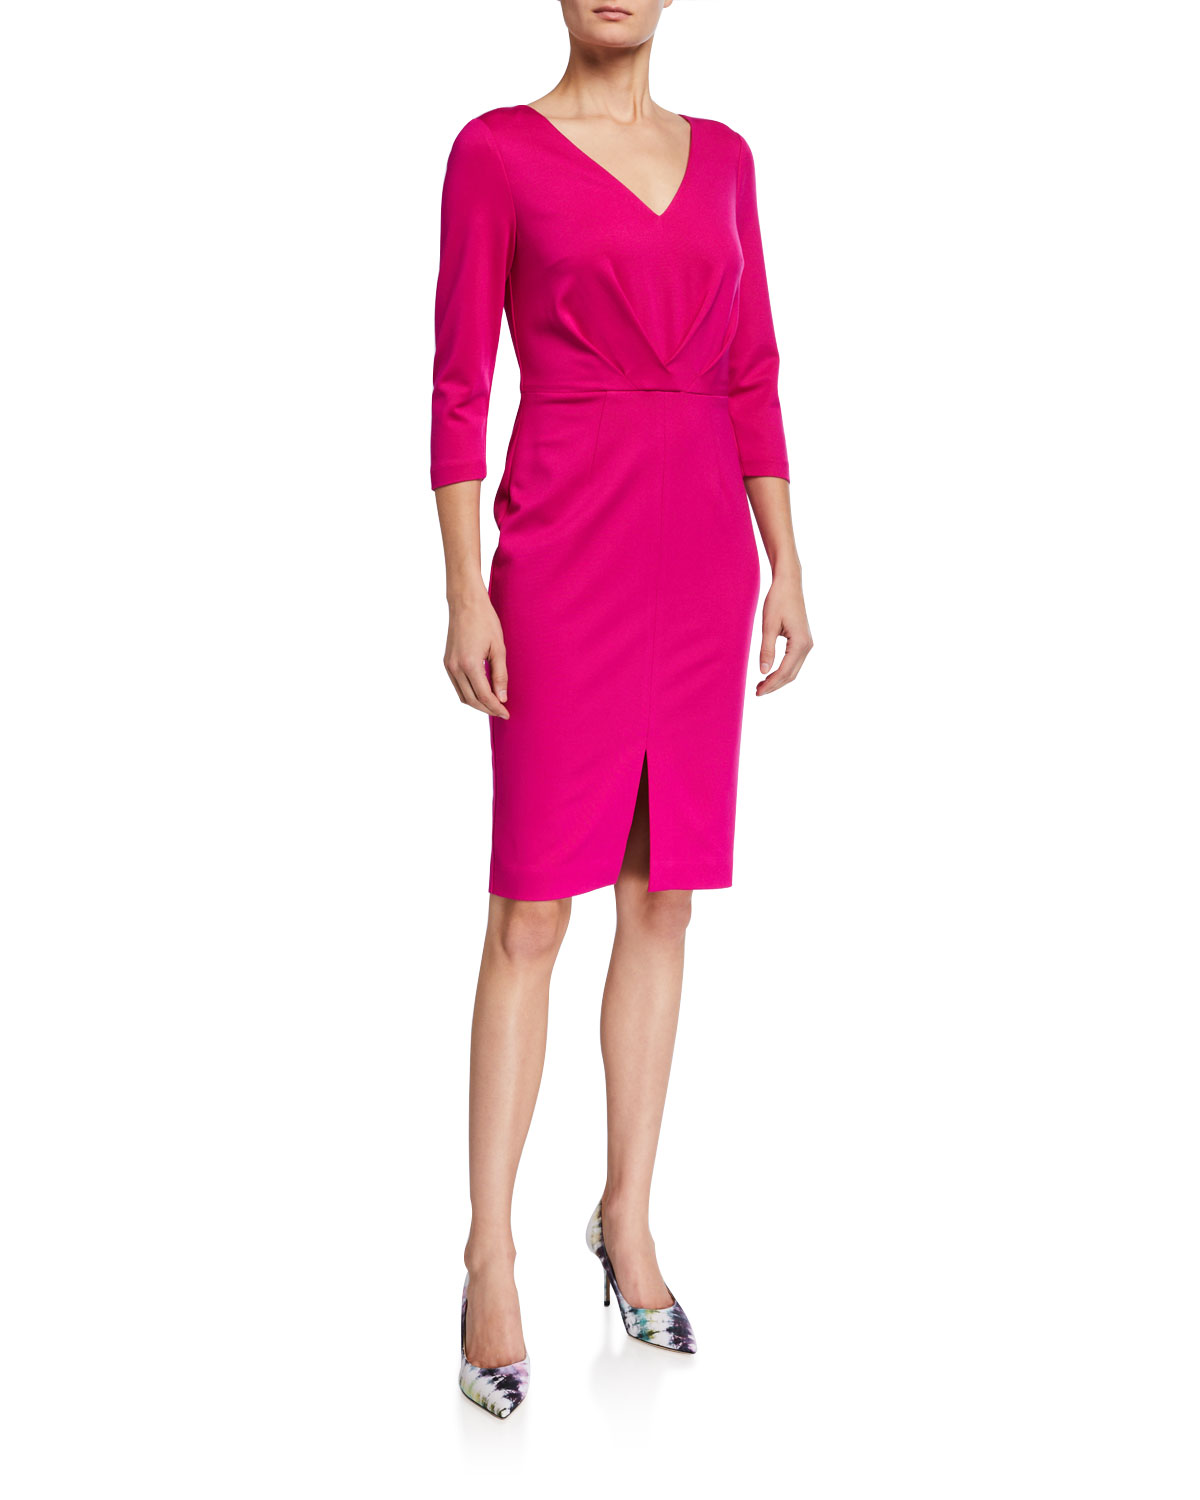 Trina Turk Sable 3/4-Sleeve Gathered Ponte Dress